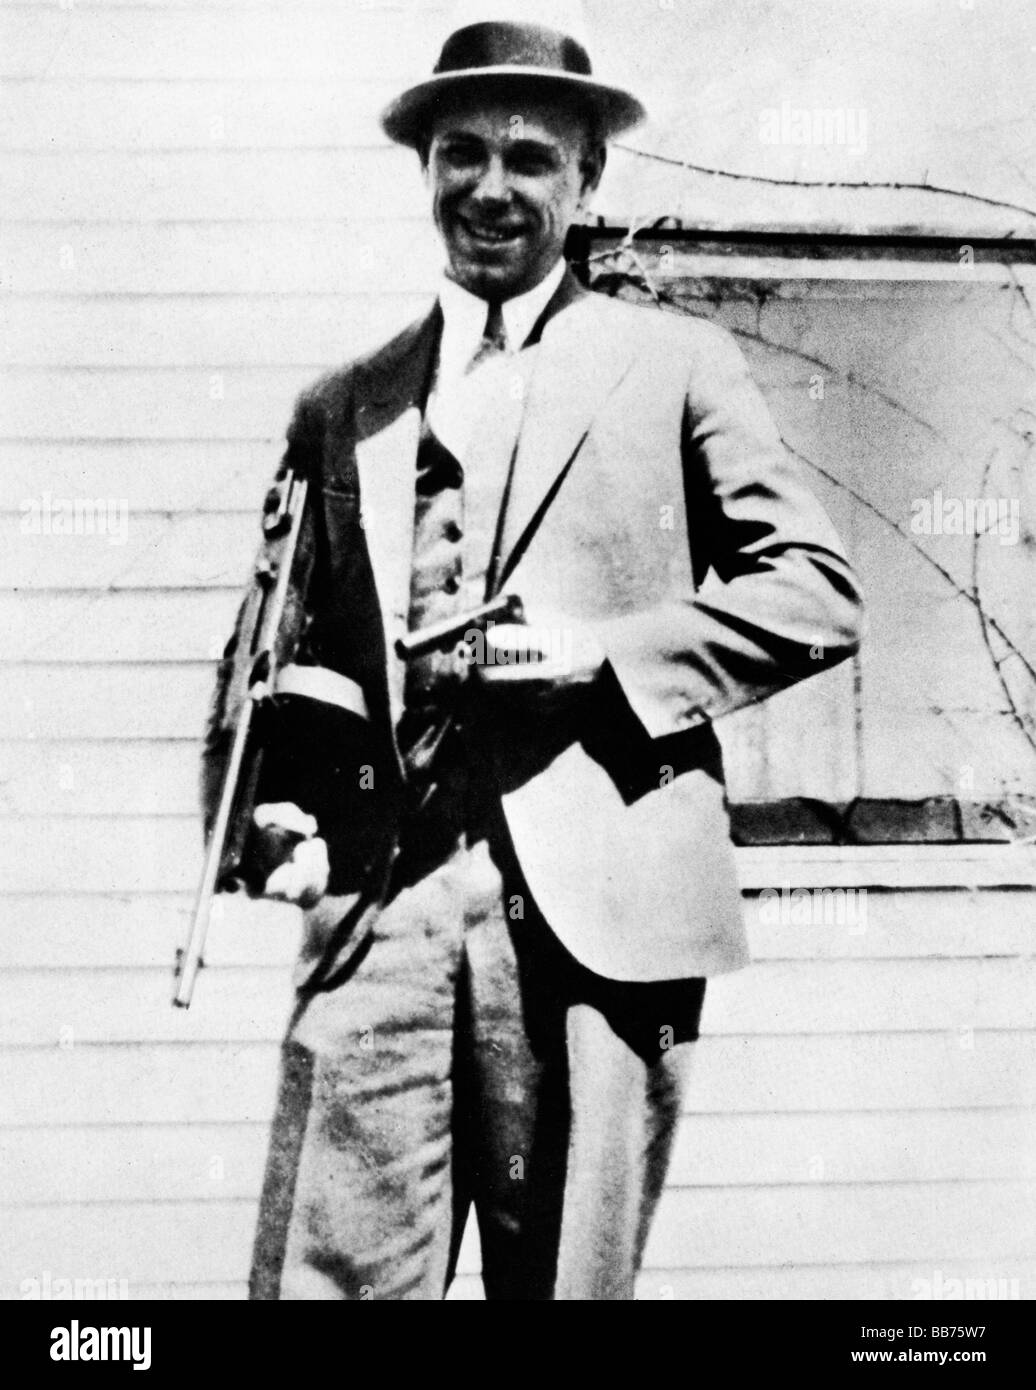 John Dillinger 1933 photo of the American Public Enemy Number One posing for the camera with his tommy gun - Stock Image